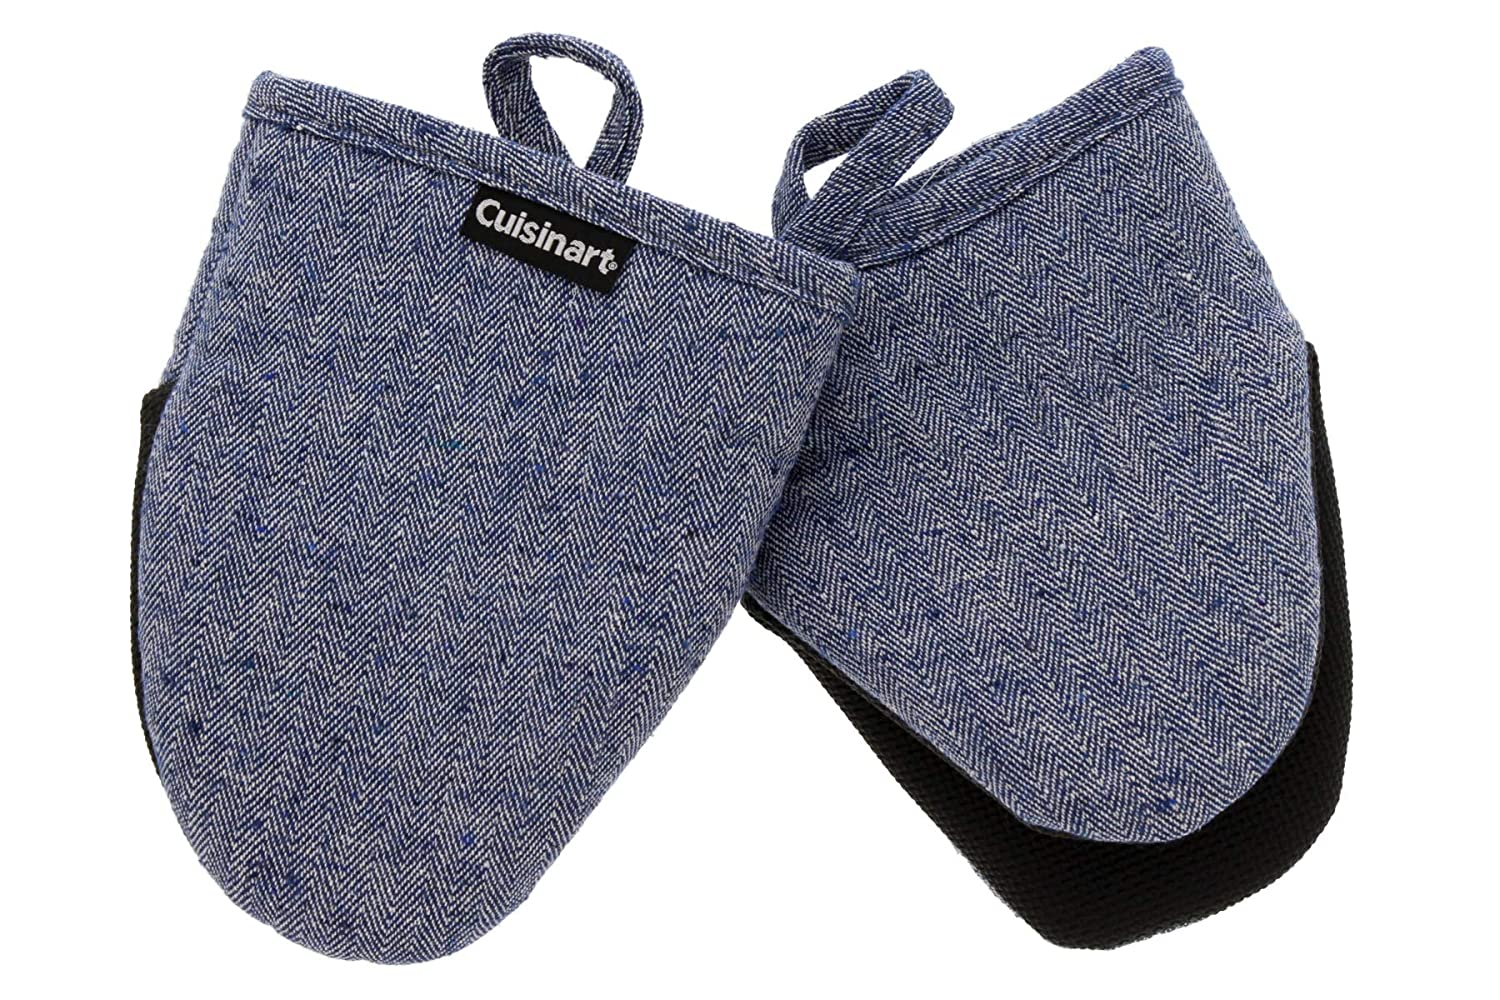 Cuisinart Oven Mitts, 2pk - Heat Resistant Oven Gloves to Protect Hands and Surfaces with Non-Slip Grip and Hanging Loop - Ideal Set for Handling Hot Cookware, Bakeware – Chevron, Blue